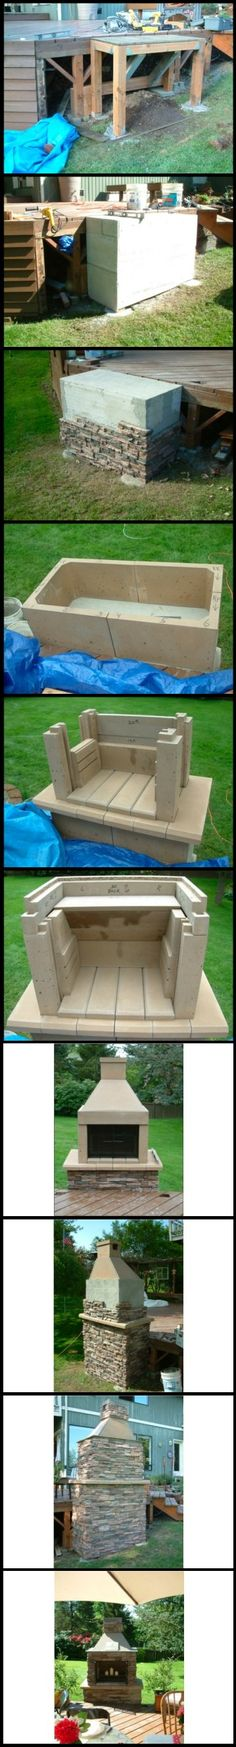 Before-During-After images of a customer's #DIY outdoor #fireplace kit assembly http://www.mantelsdirect.com/Products-Accessories/Outdoor-Fireplace-Kits/Perfect-Outdoor-Fireplace-BBQ